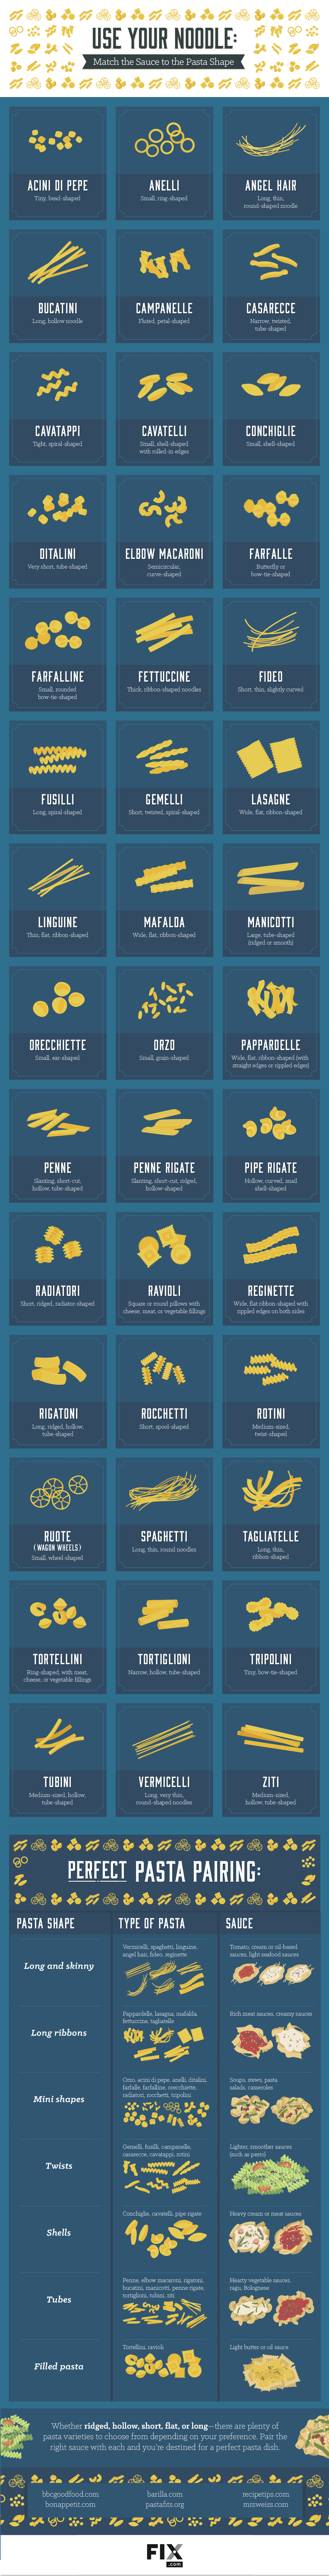 The Perfect Sauces for Each Type of Pasta